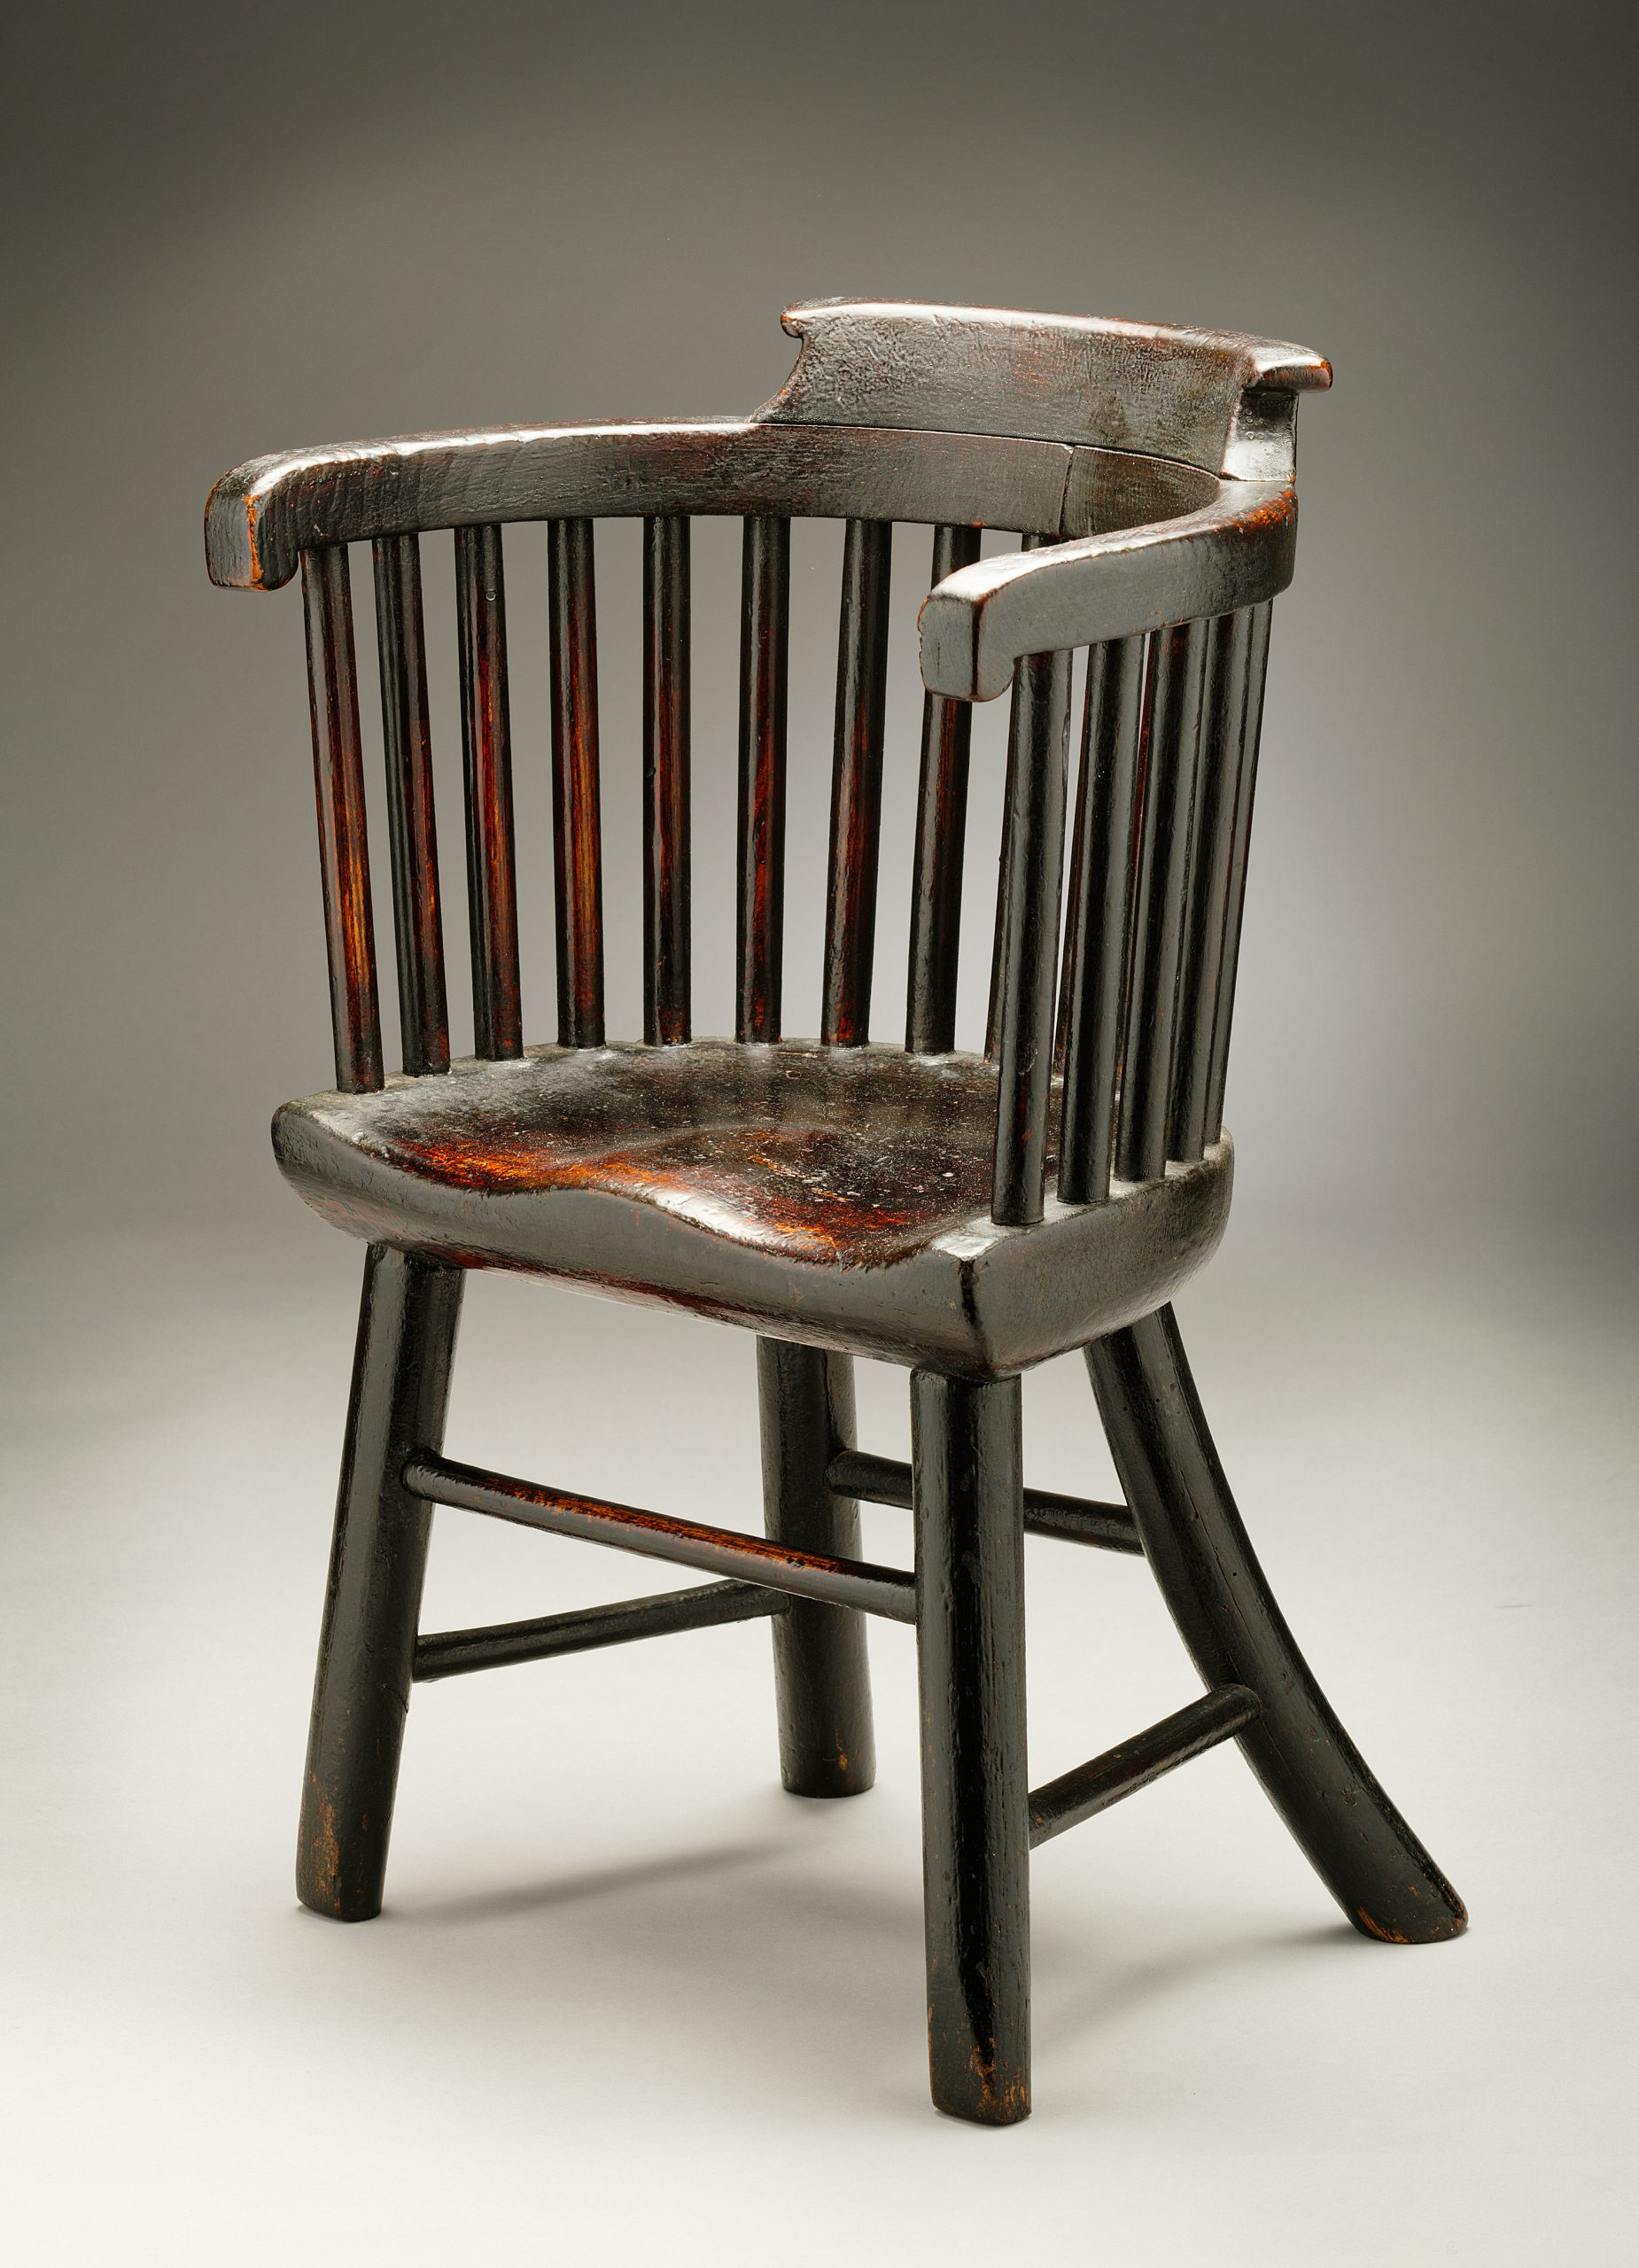 Image of A Painted Child's Chair